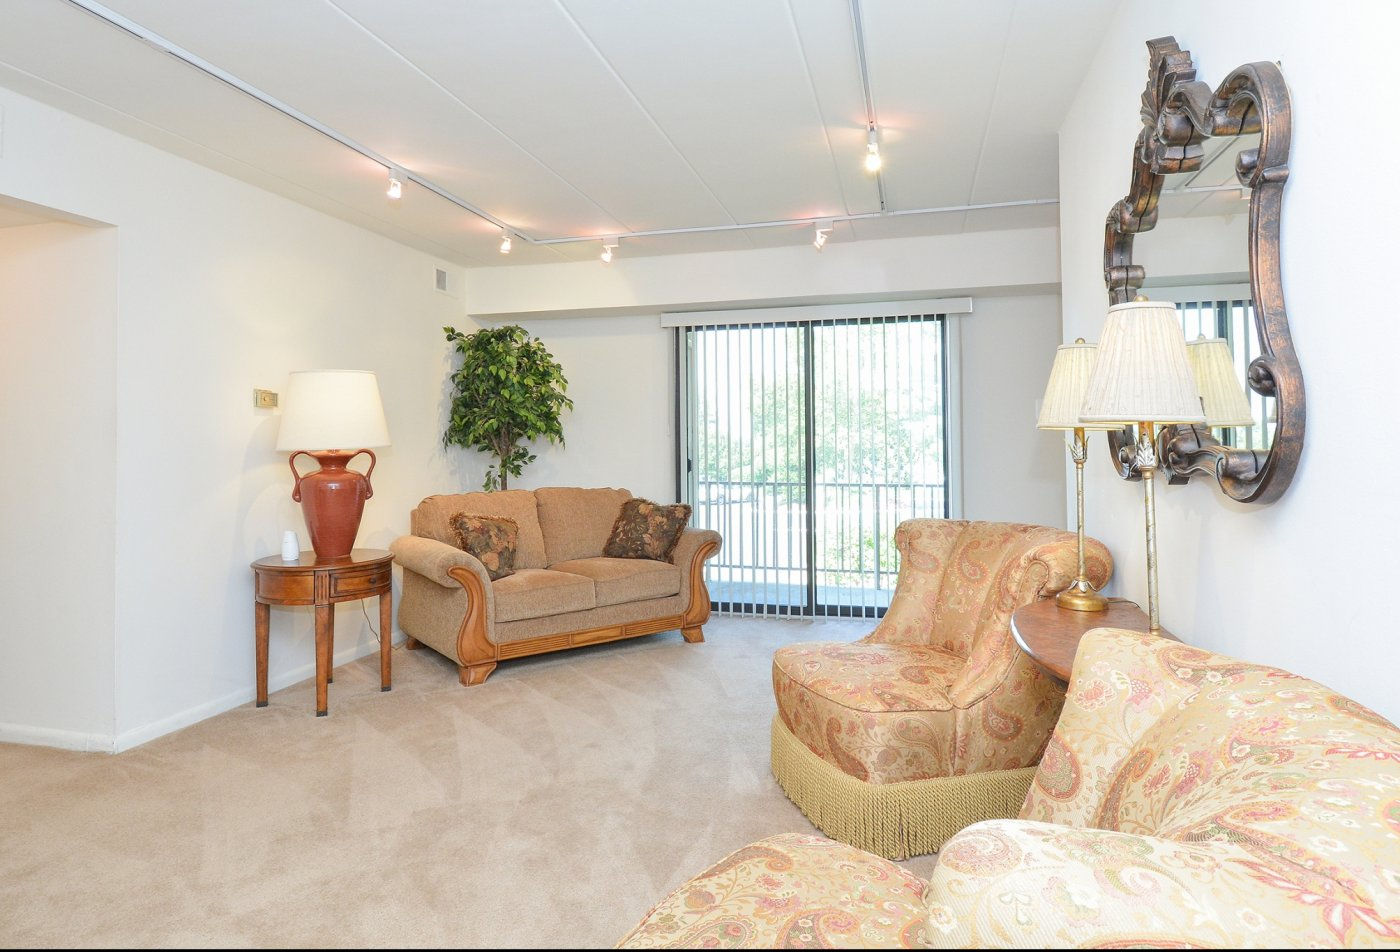 Spacious Living Room | Apartments in Wilmington, DE | Fairway Park Apartments & Townhomes